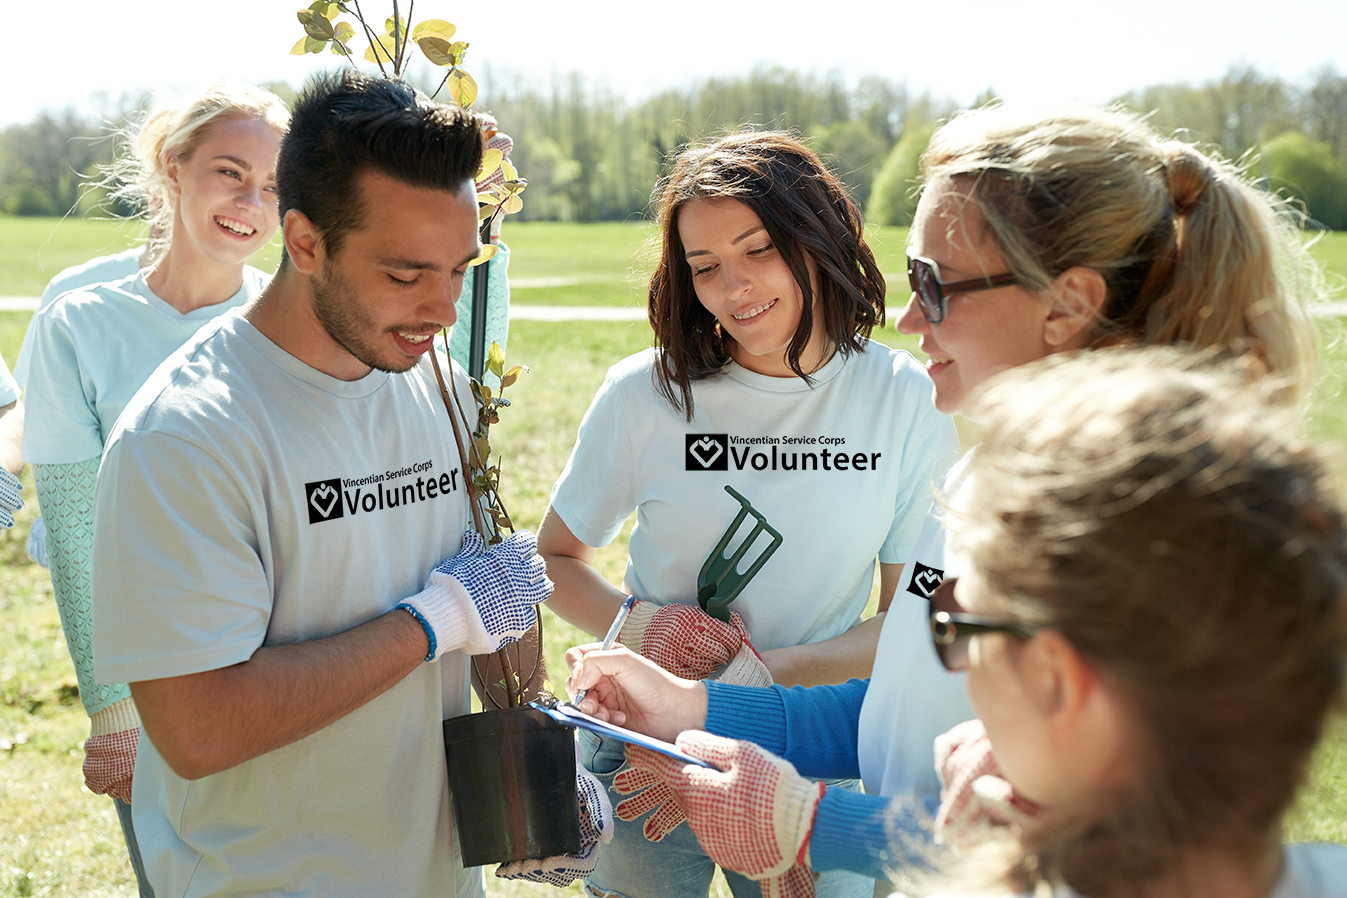 !group-of-volunteers-with-tree-seedlings-in-park-P7SJ7GF.jpg